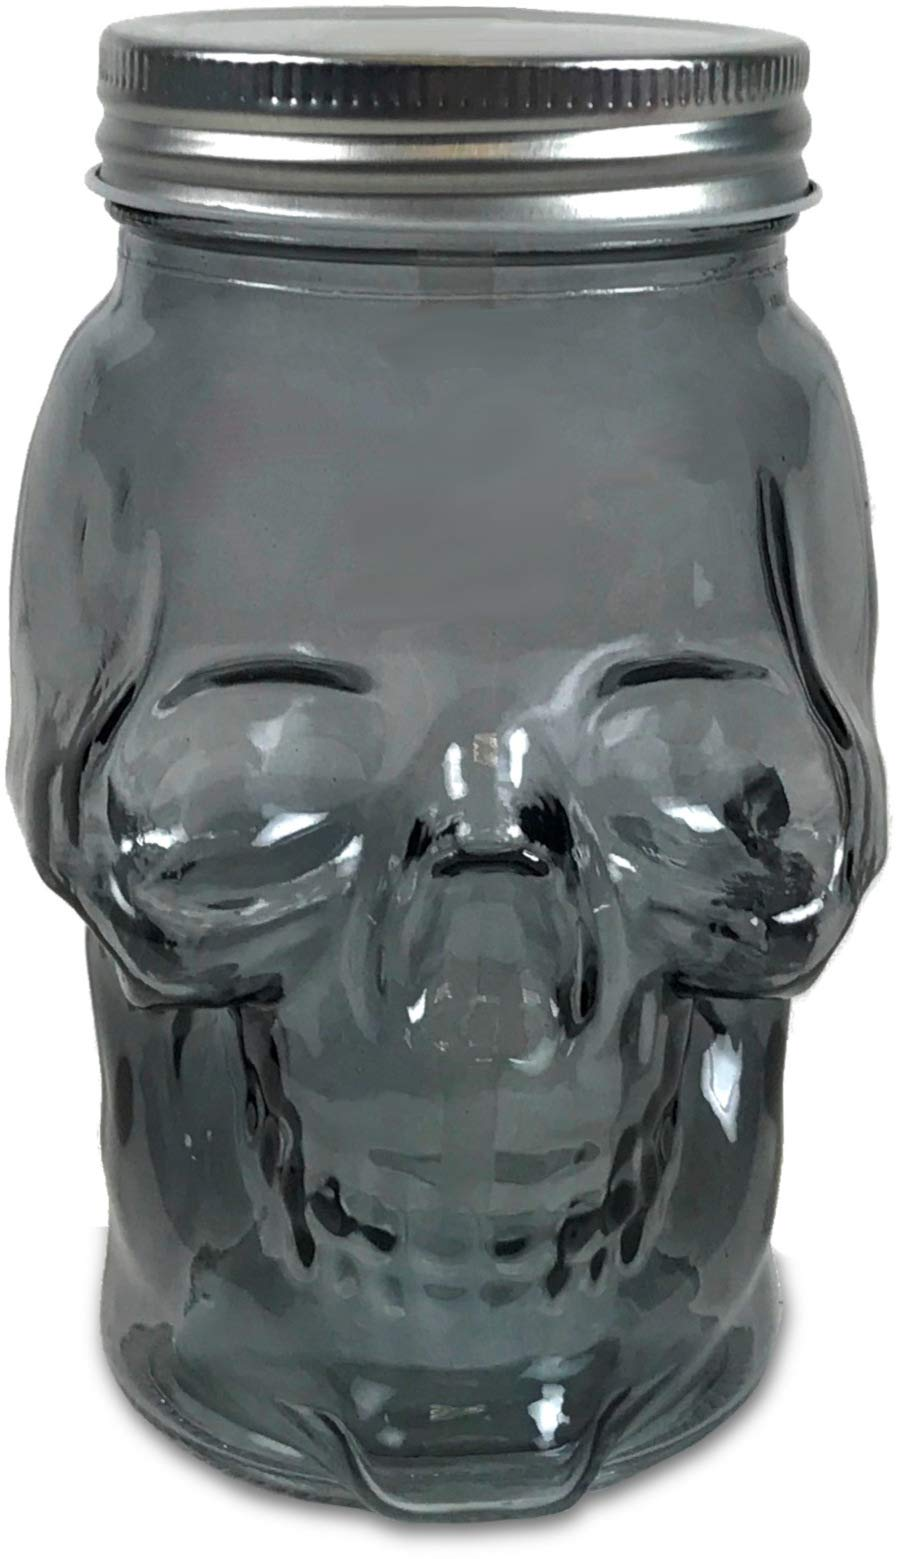 Circleware 07452 Skull Face Beer Glass Mason Jar with Silver Lid, Set of 6, Heavy Base Funny Glassware Beverage Drinking Cup for Water, Wine and Bar Decor Novelty Gifts, 16 oz, 6pc-Smoke